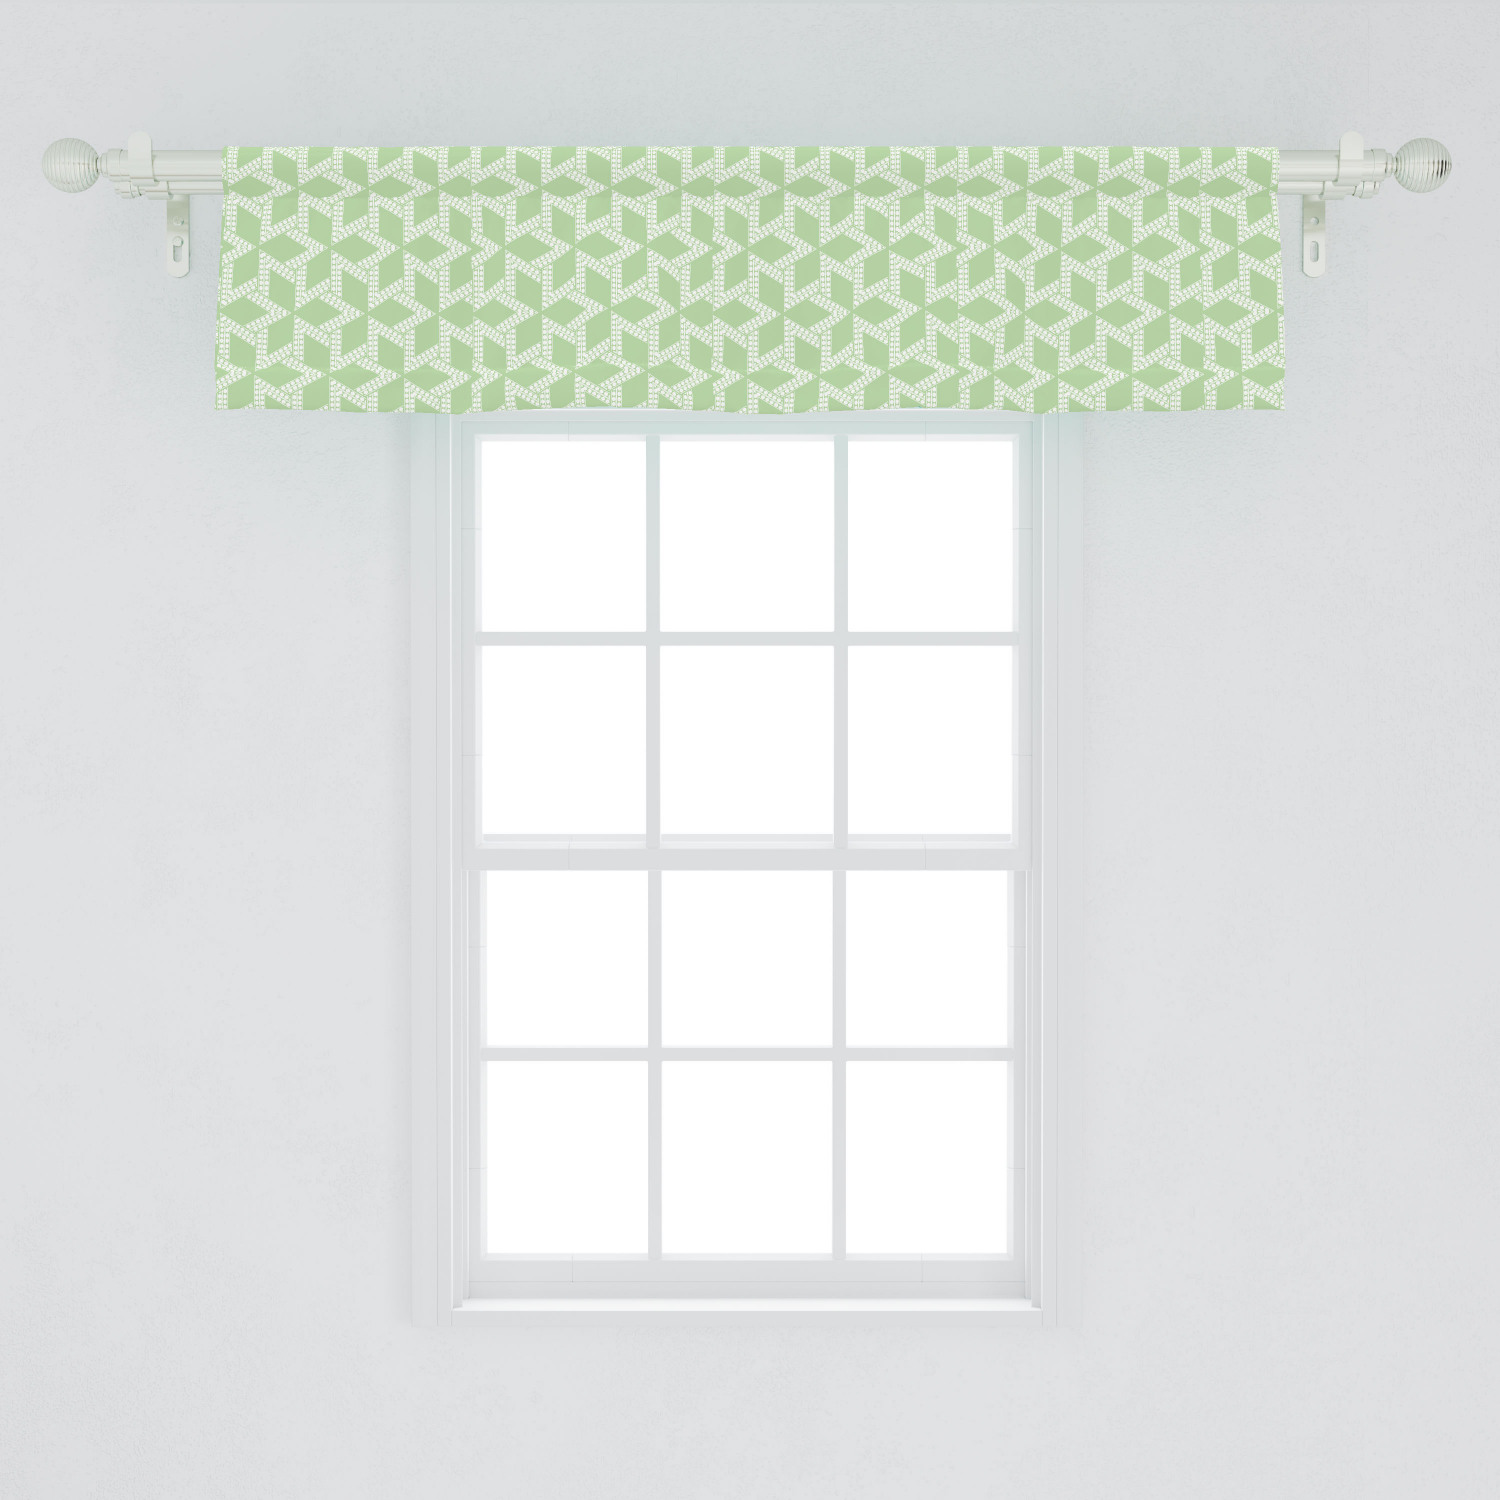 Picture of: Abstract Window Valance Ethnic Moroccan Mosaic Style Stars With Contemporary Inner Dots Design Curtain Valance For Kitchen Bedroom Decor With Rod Pocket By Ambesonne Walmart Com Walmart Com